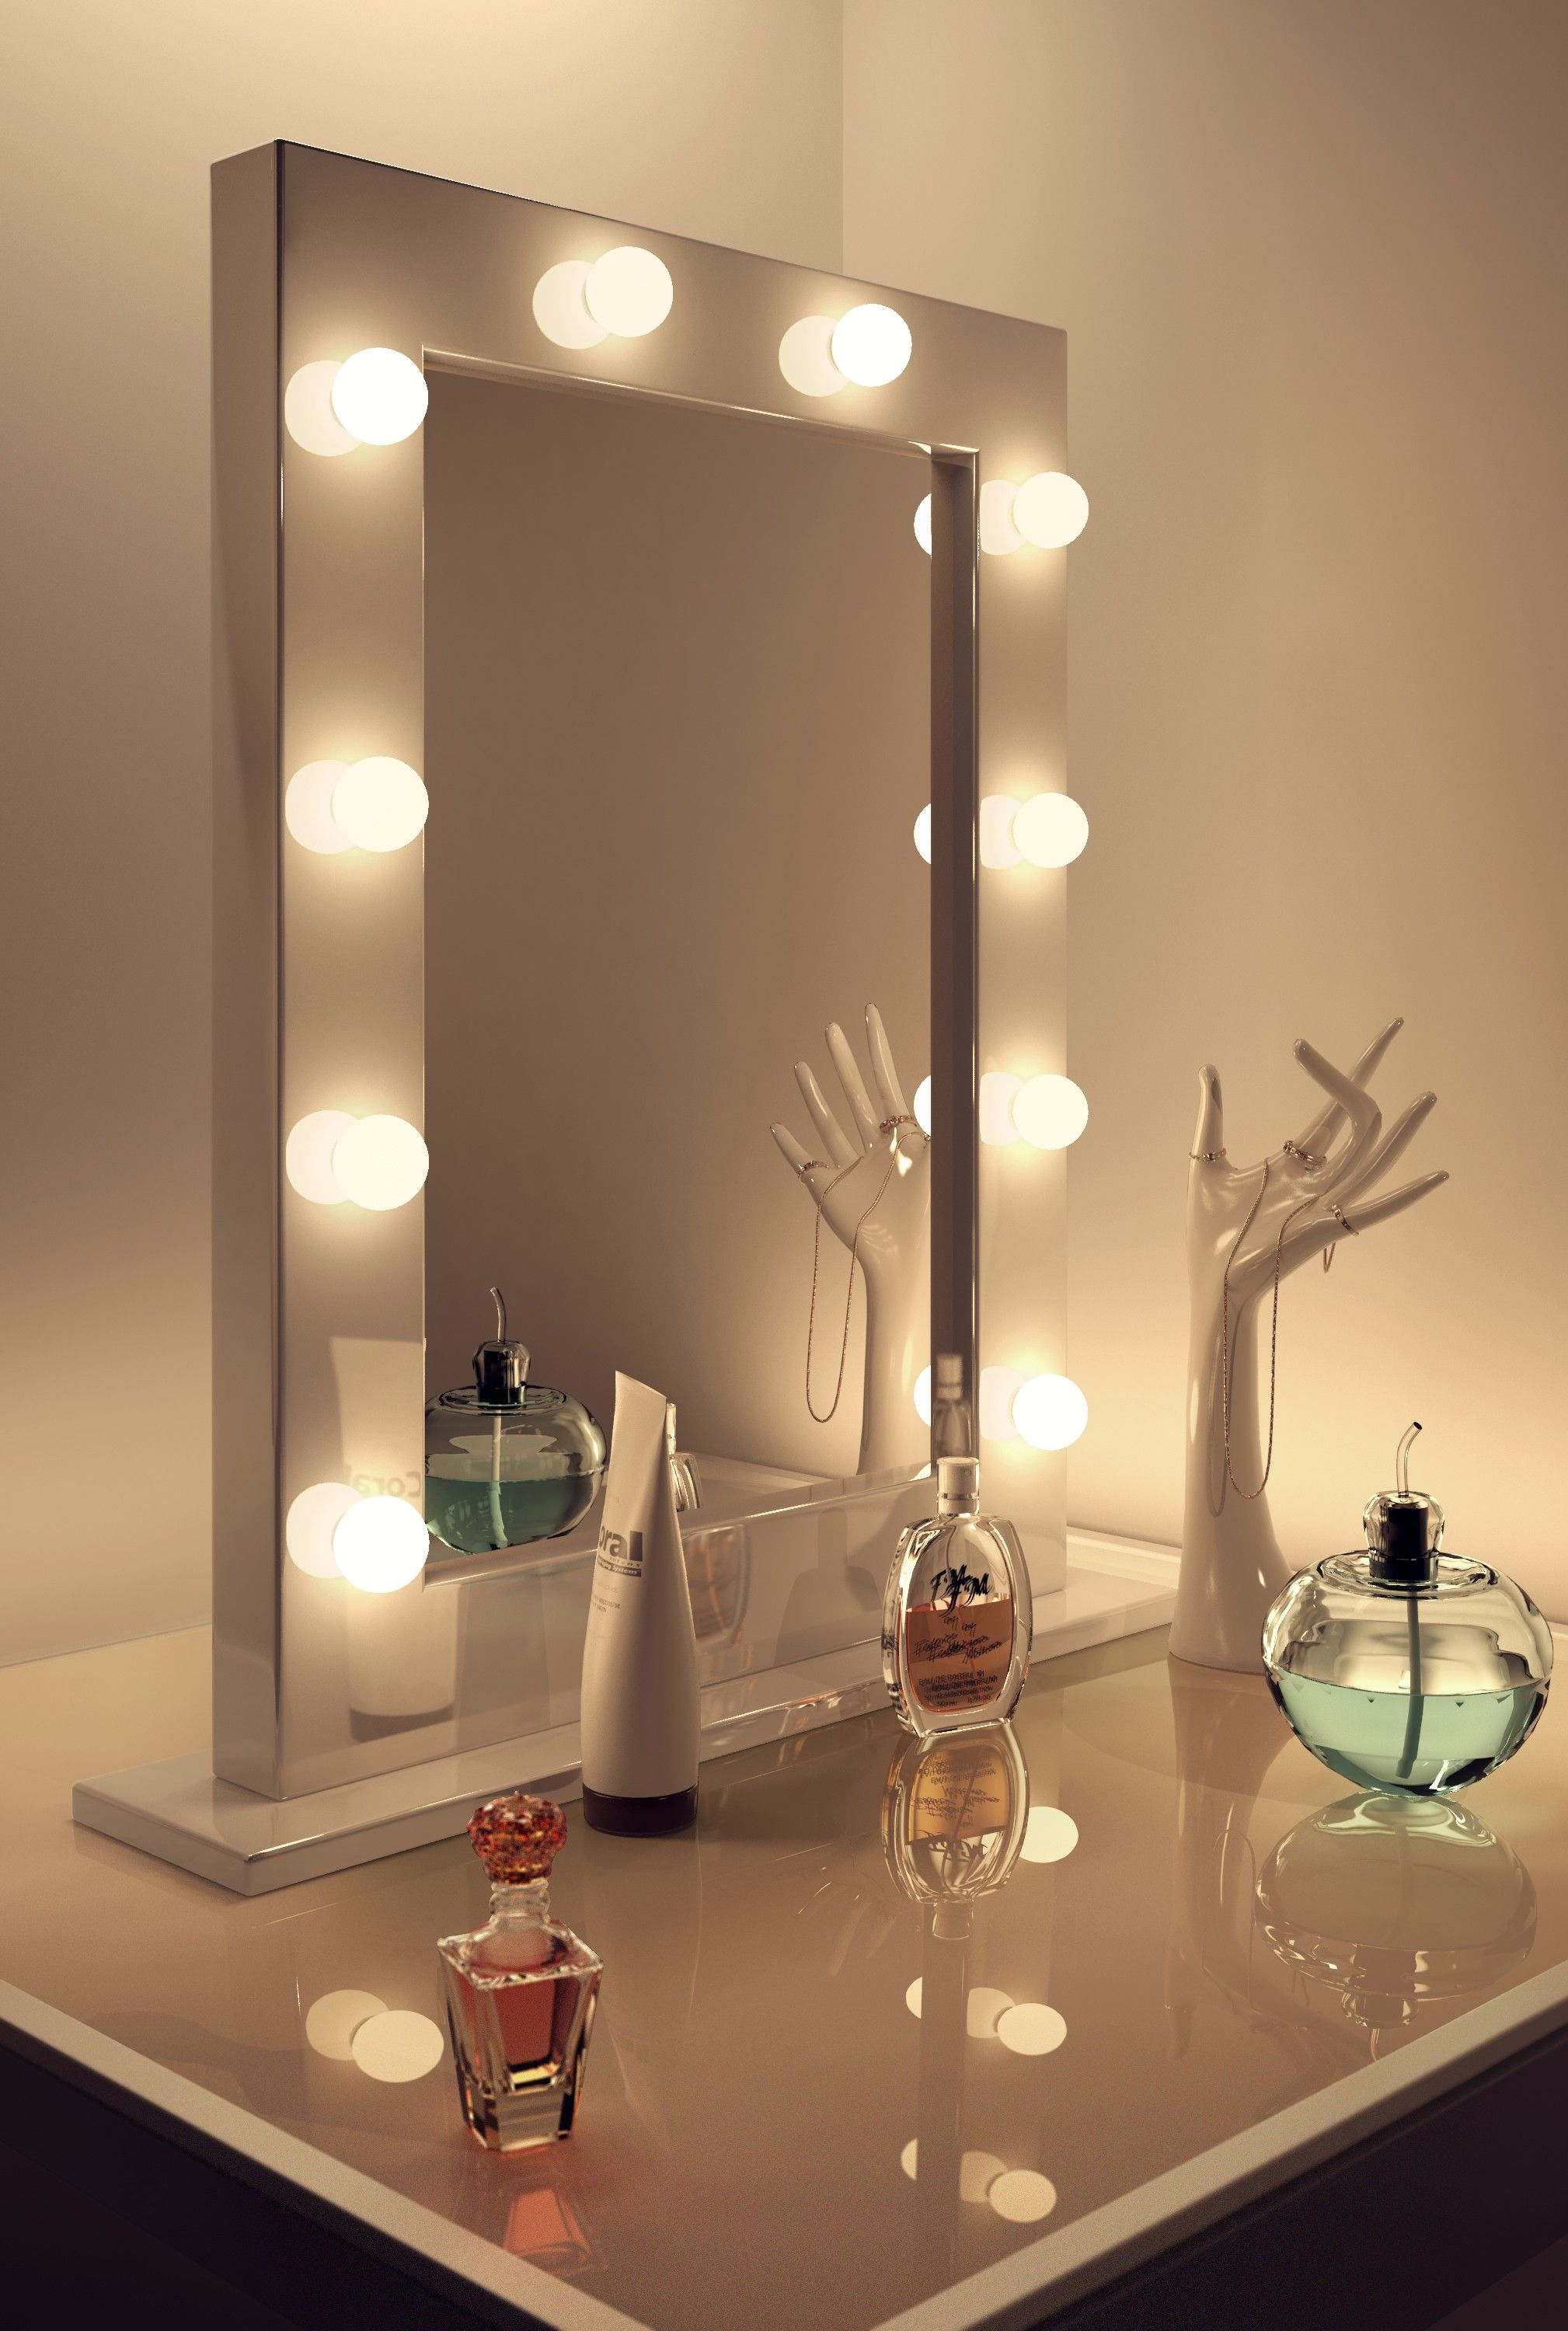 Diy Vanity Mirror Ideas To Make Your Room More Beautiful Tags With Lights Bathroom Cabinet Rustic